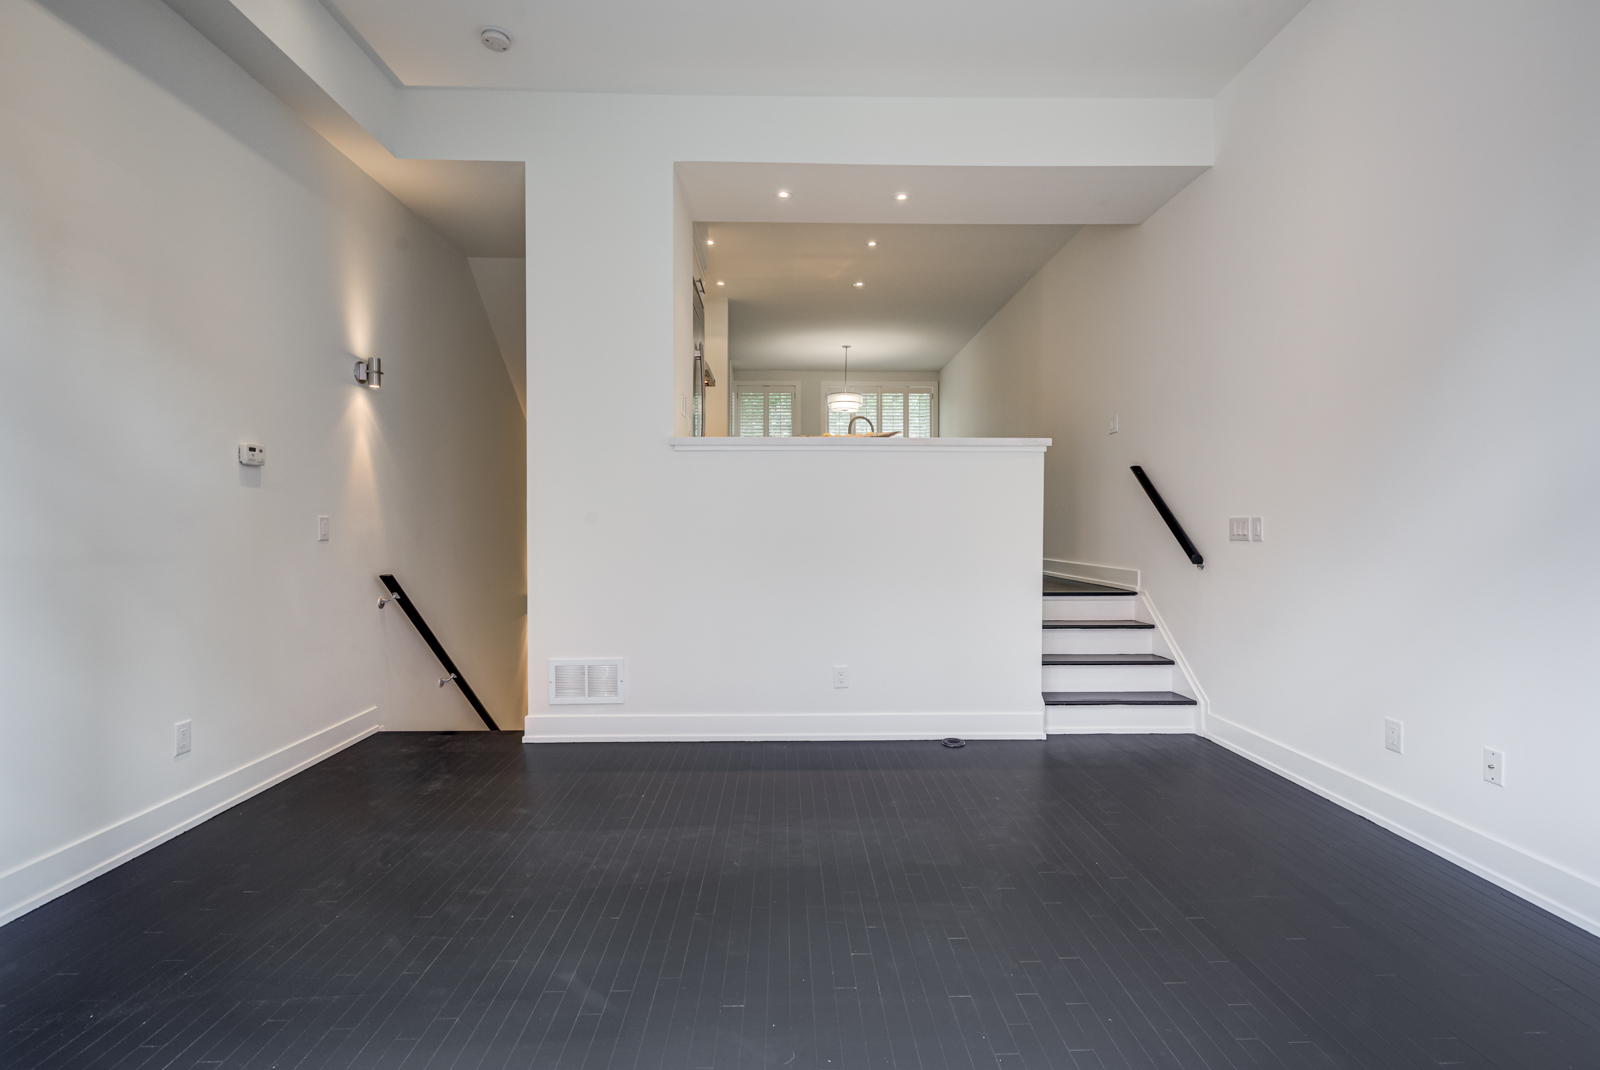 Empty condo with black hardwood floors.